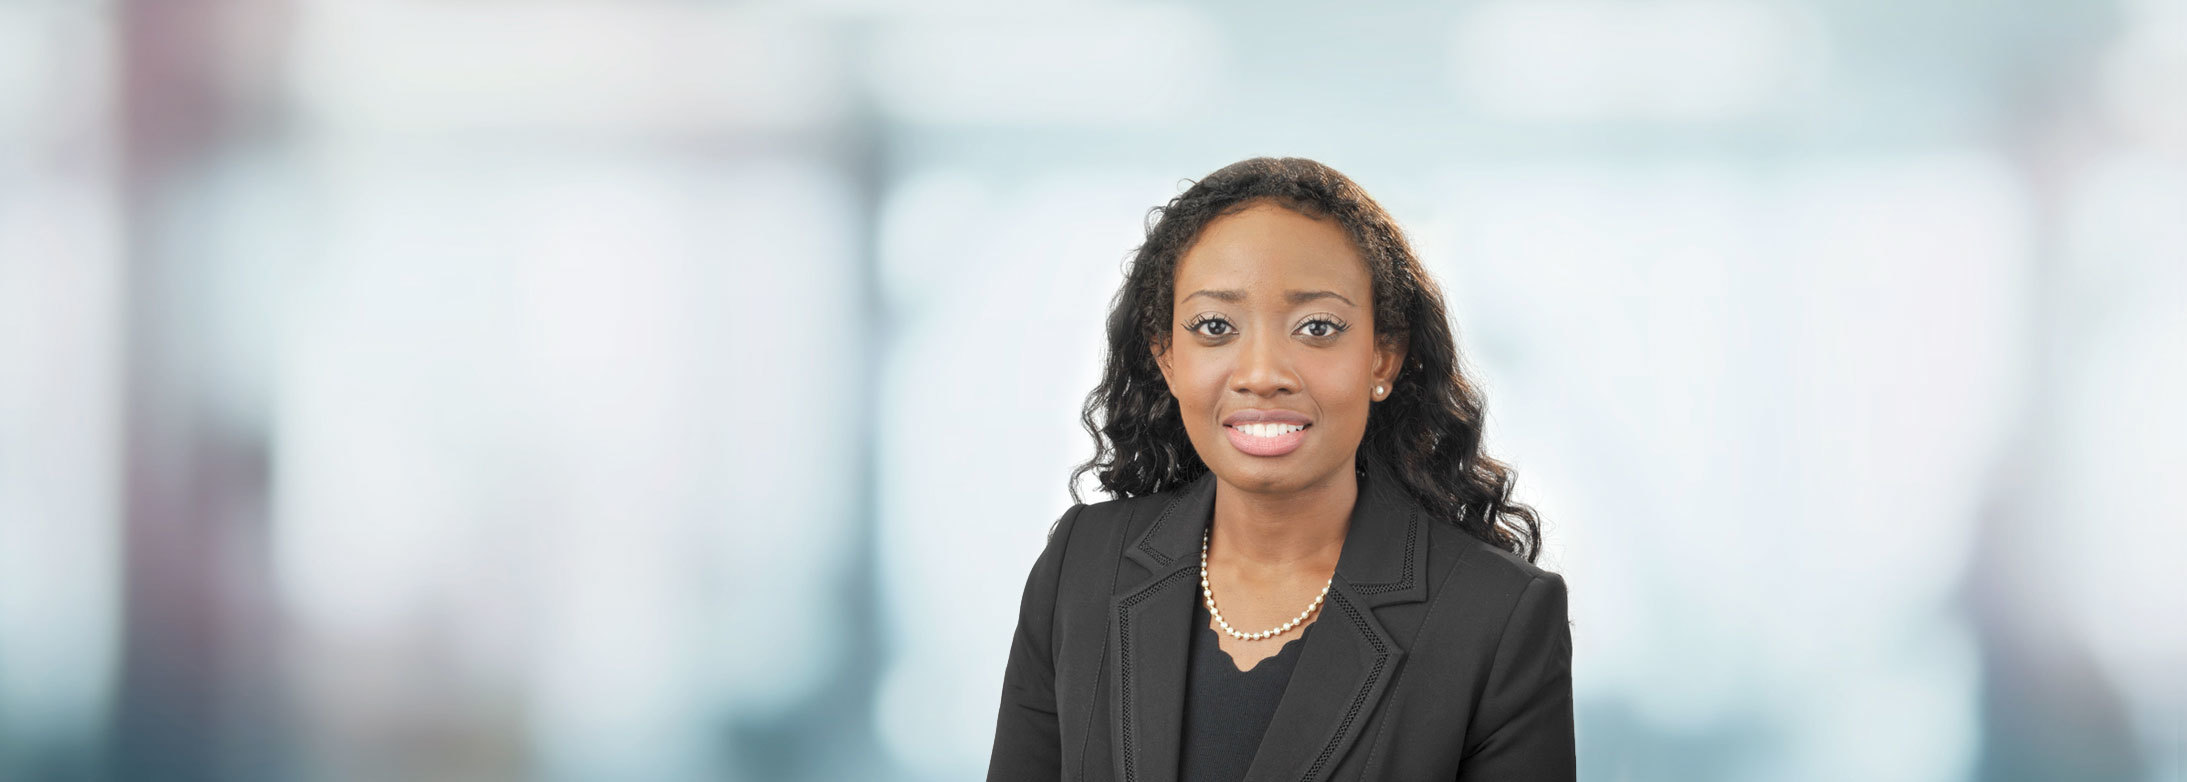 Sara Alexandre, Swift, Currie, McGhee & Hiers, LLP Photo